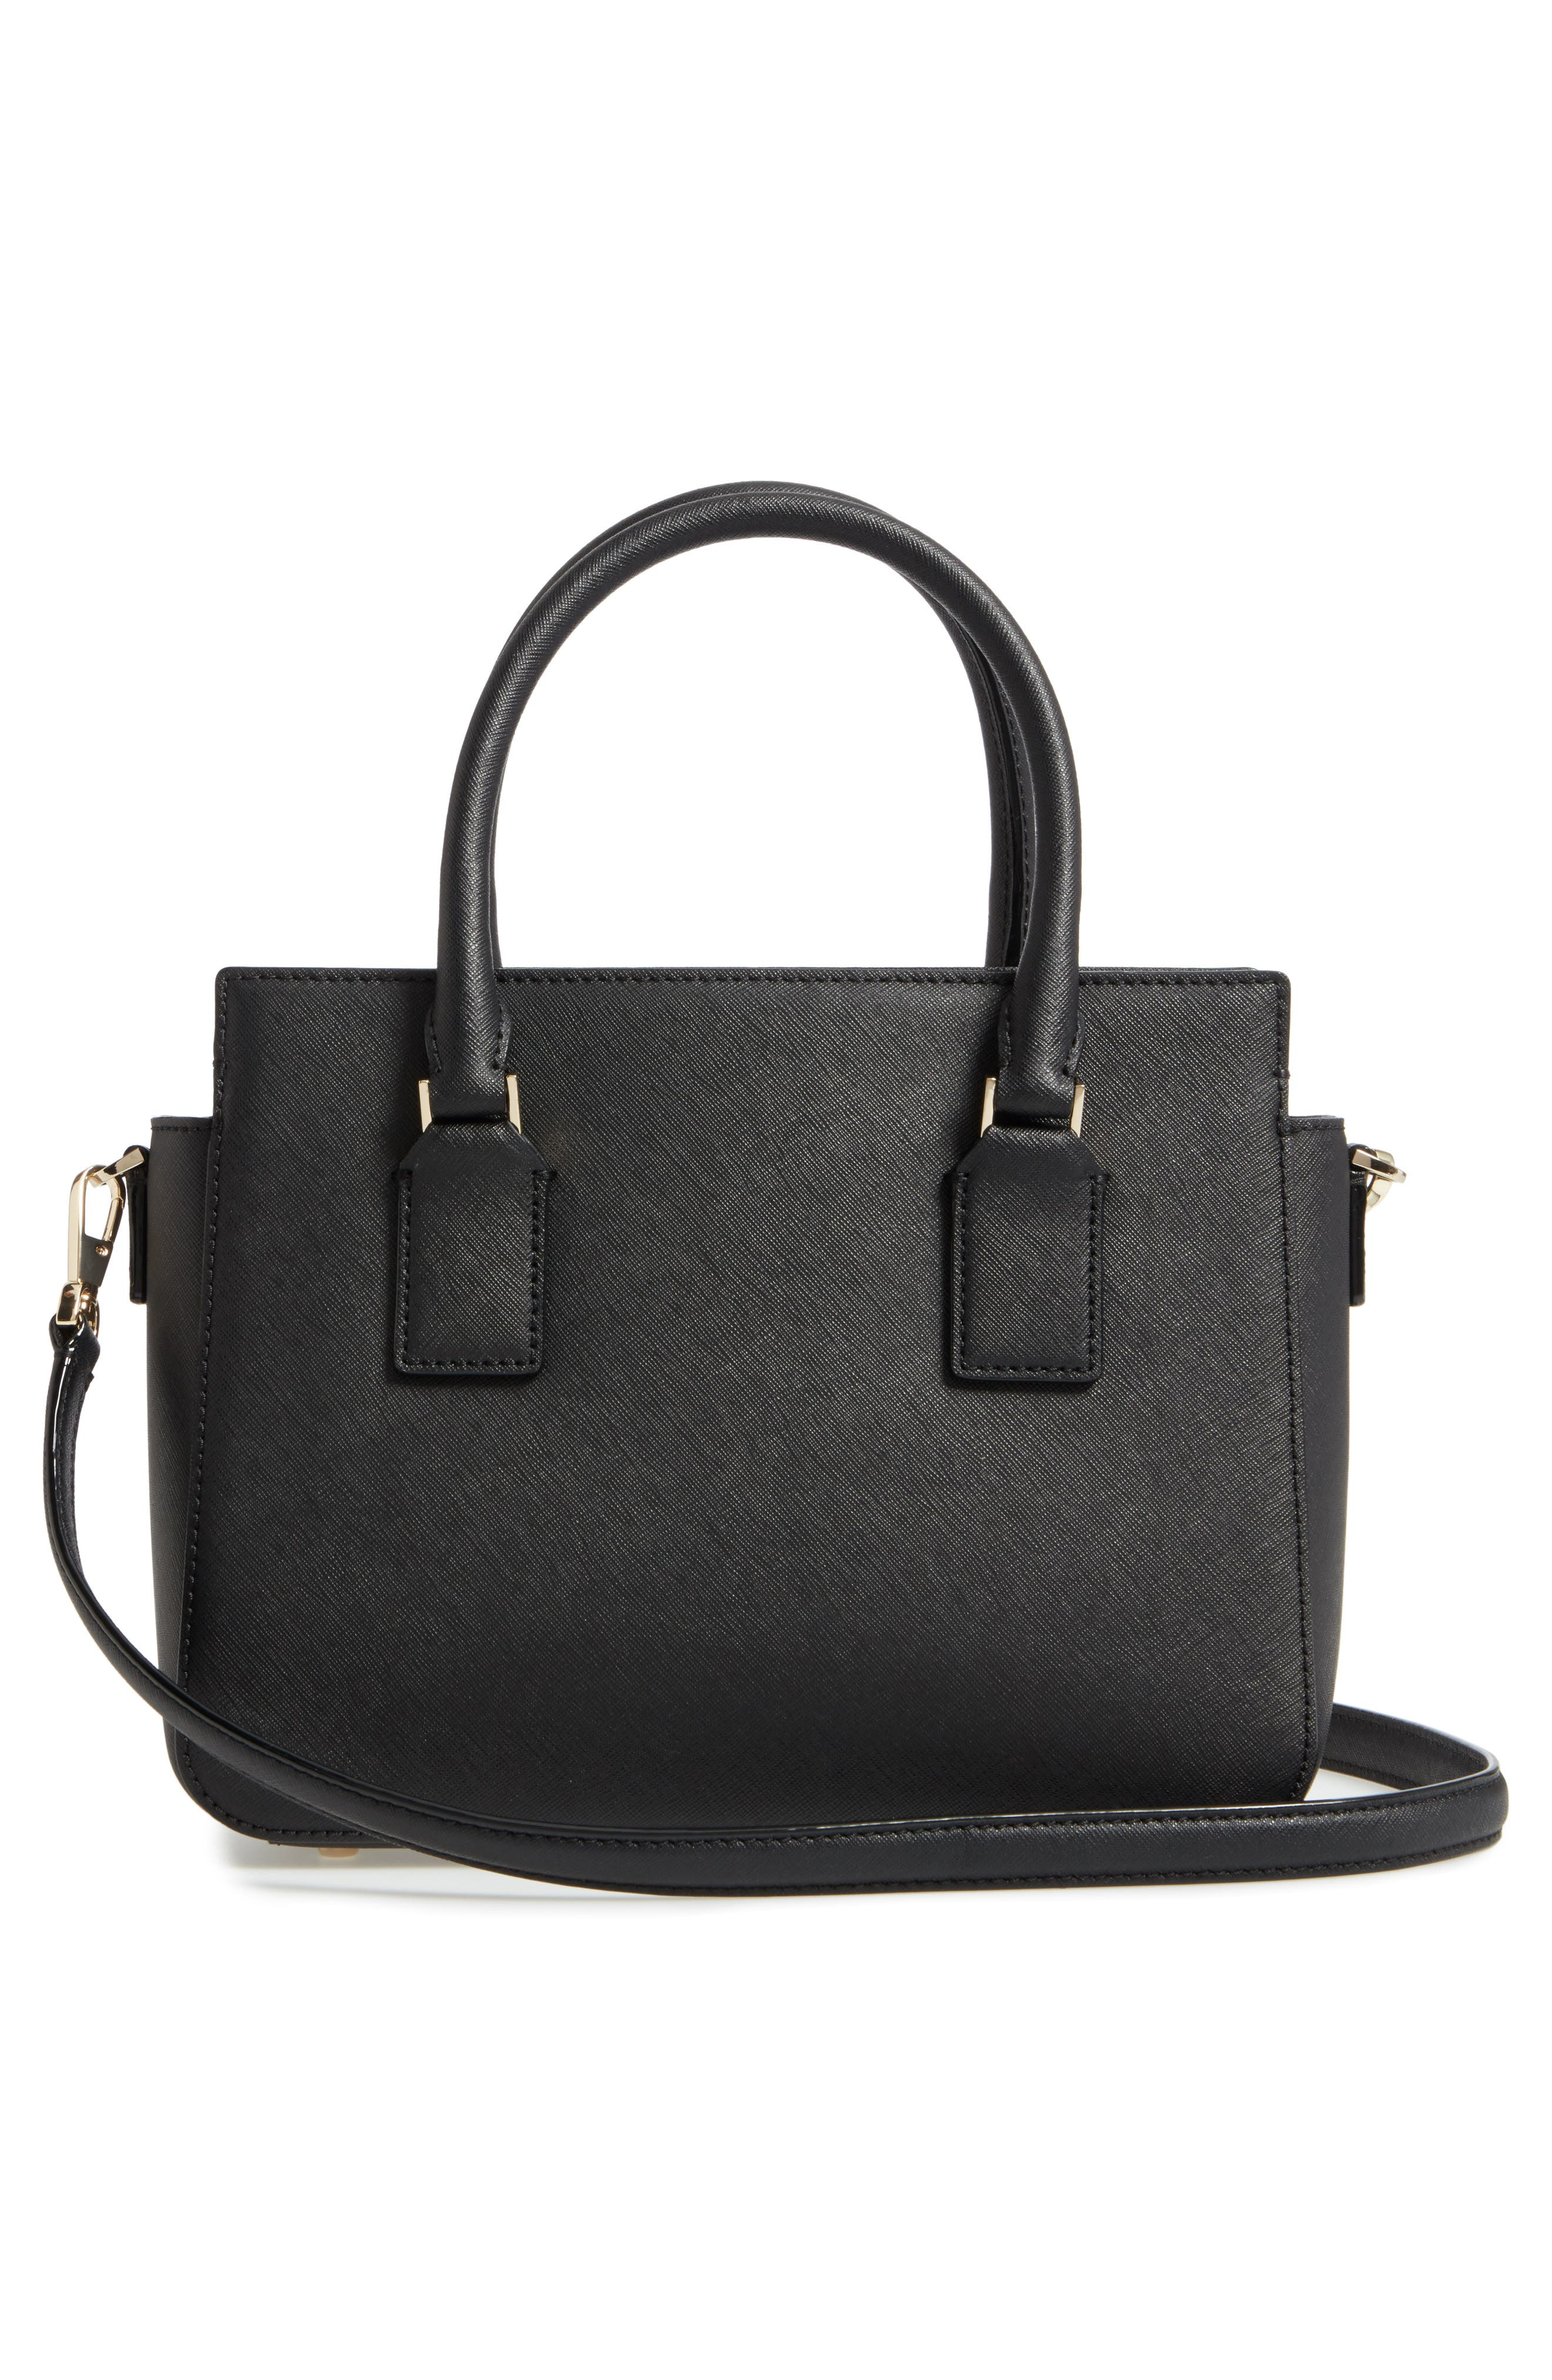 cameron street - small sally leather satchel,                             Alternate thumbnail 3, color,                             001